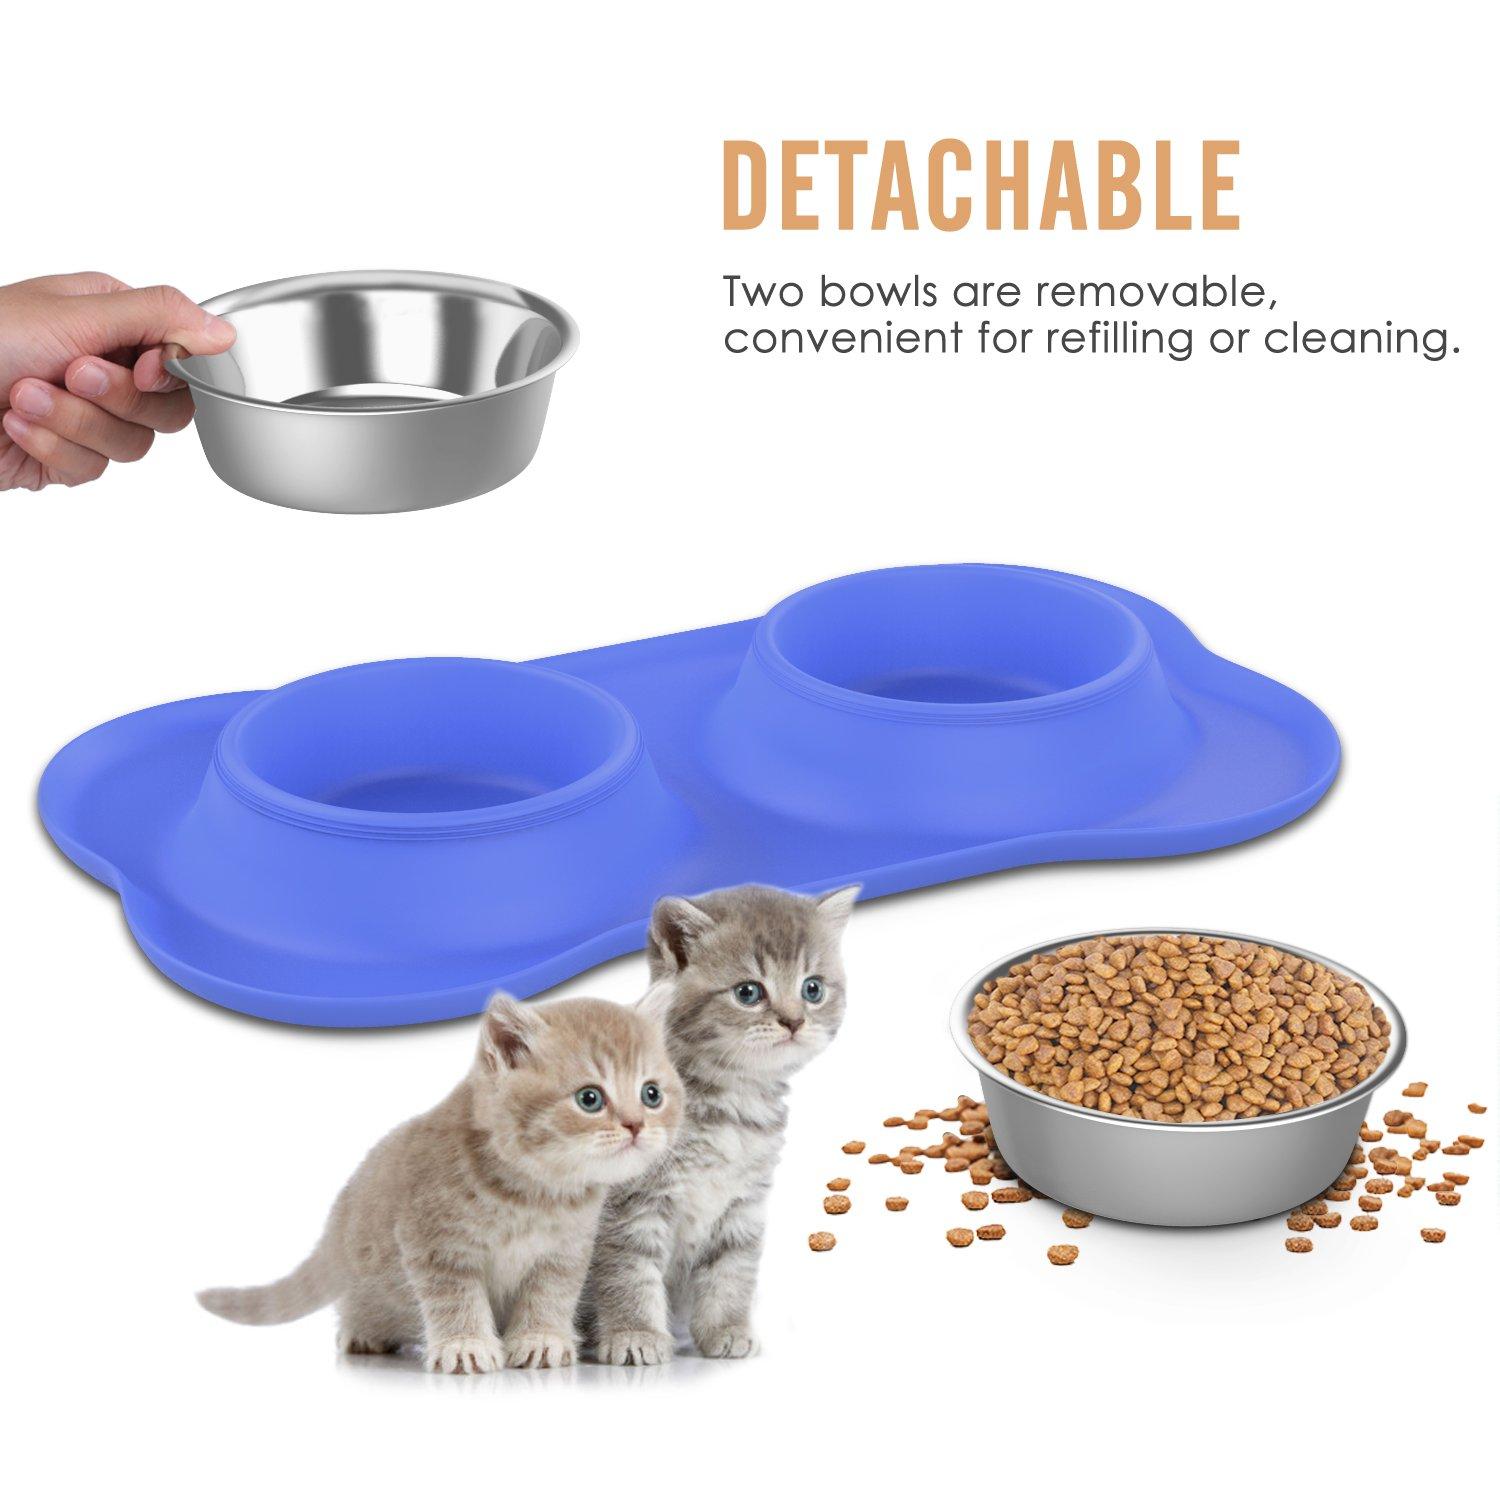 Pawaboo Pet Dog Cat Bowls, Premium Stainless Steel Pet Feeder with Food Grade Bone Shaped Rubber Base, 4.33 Inch Diameter Bowls for Pet Dog Cat Food or Water, Set of 2, Small Size, BLUE by PAWABOO (Image #3)